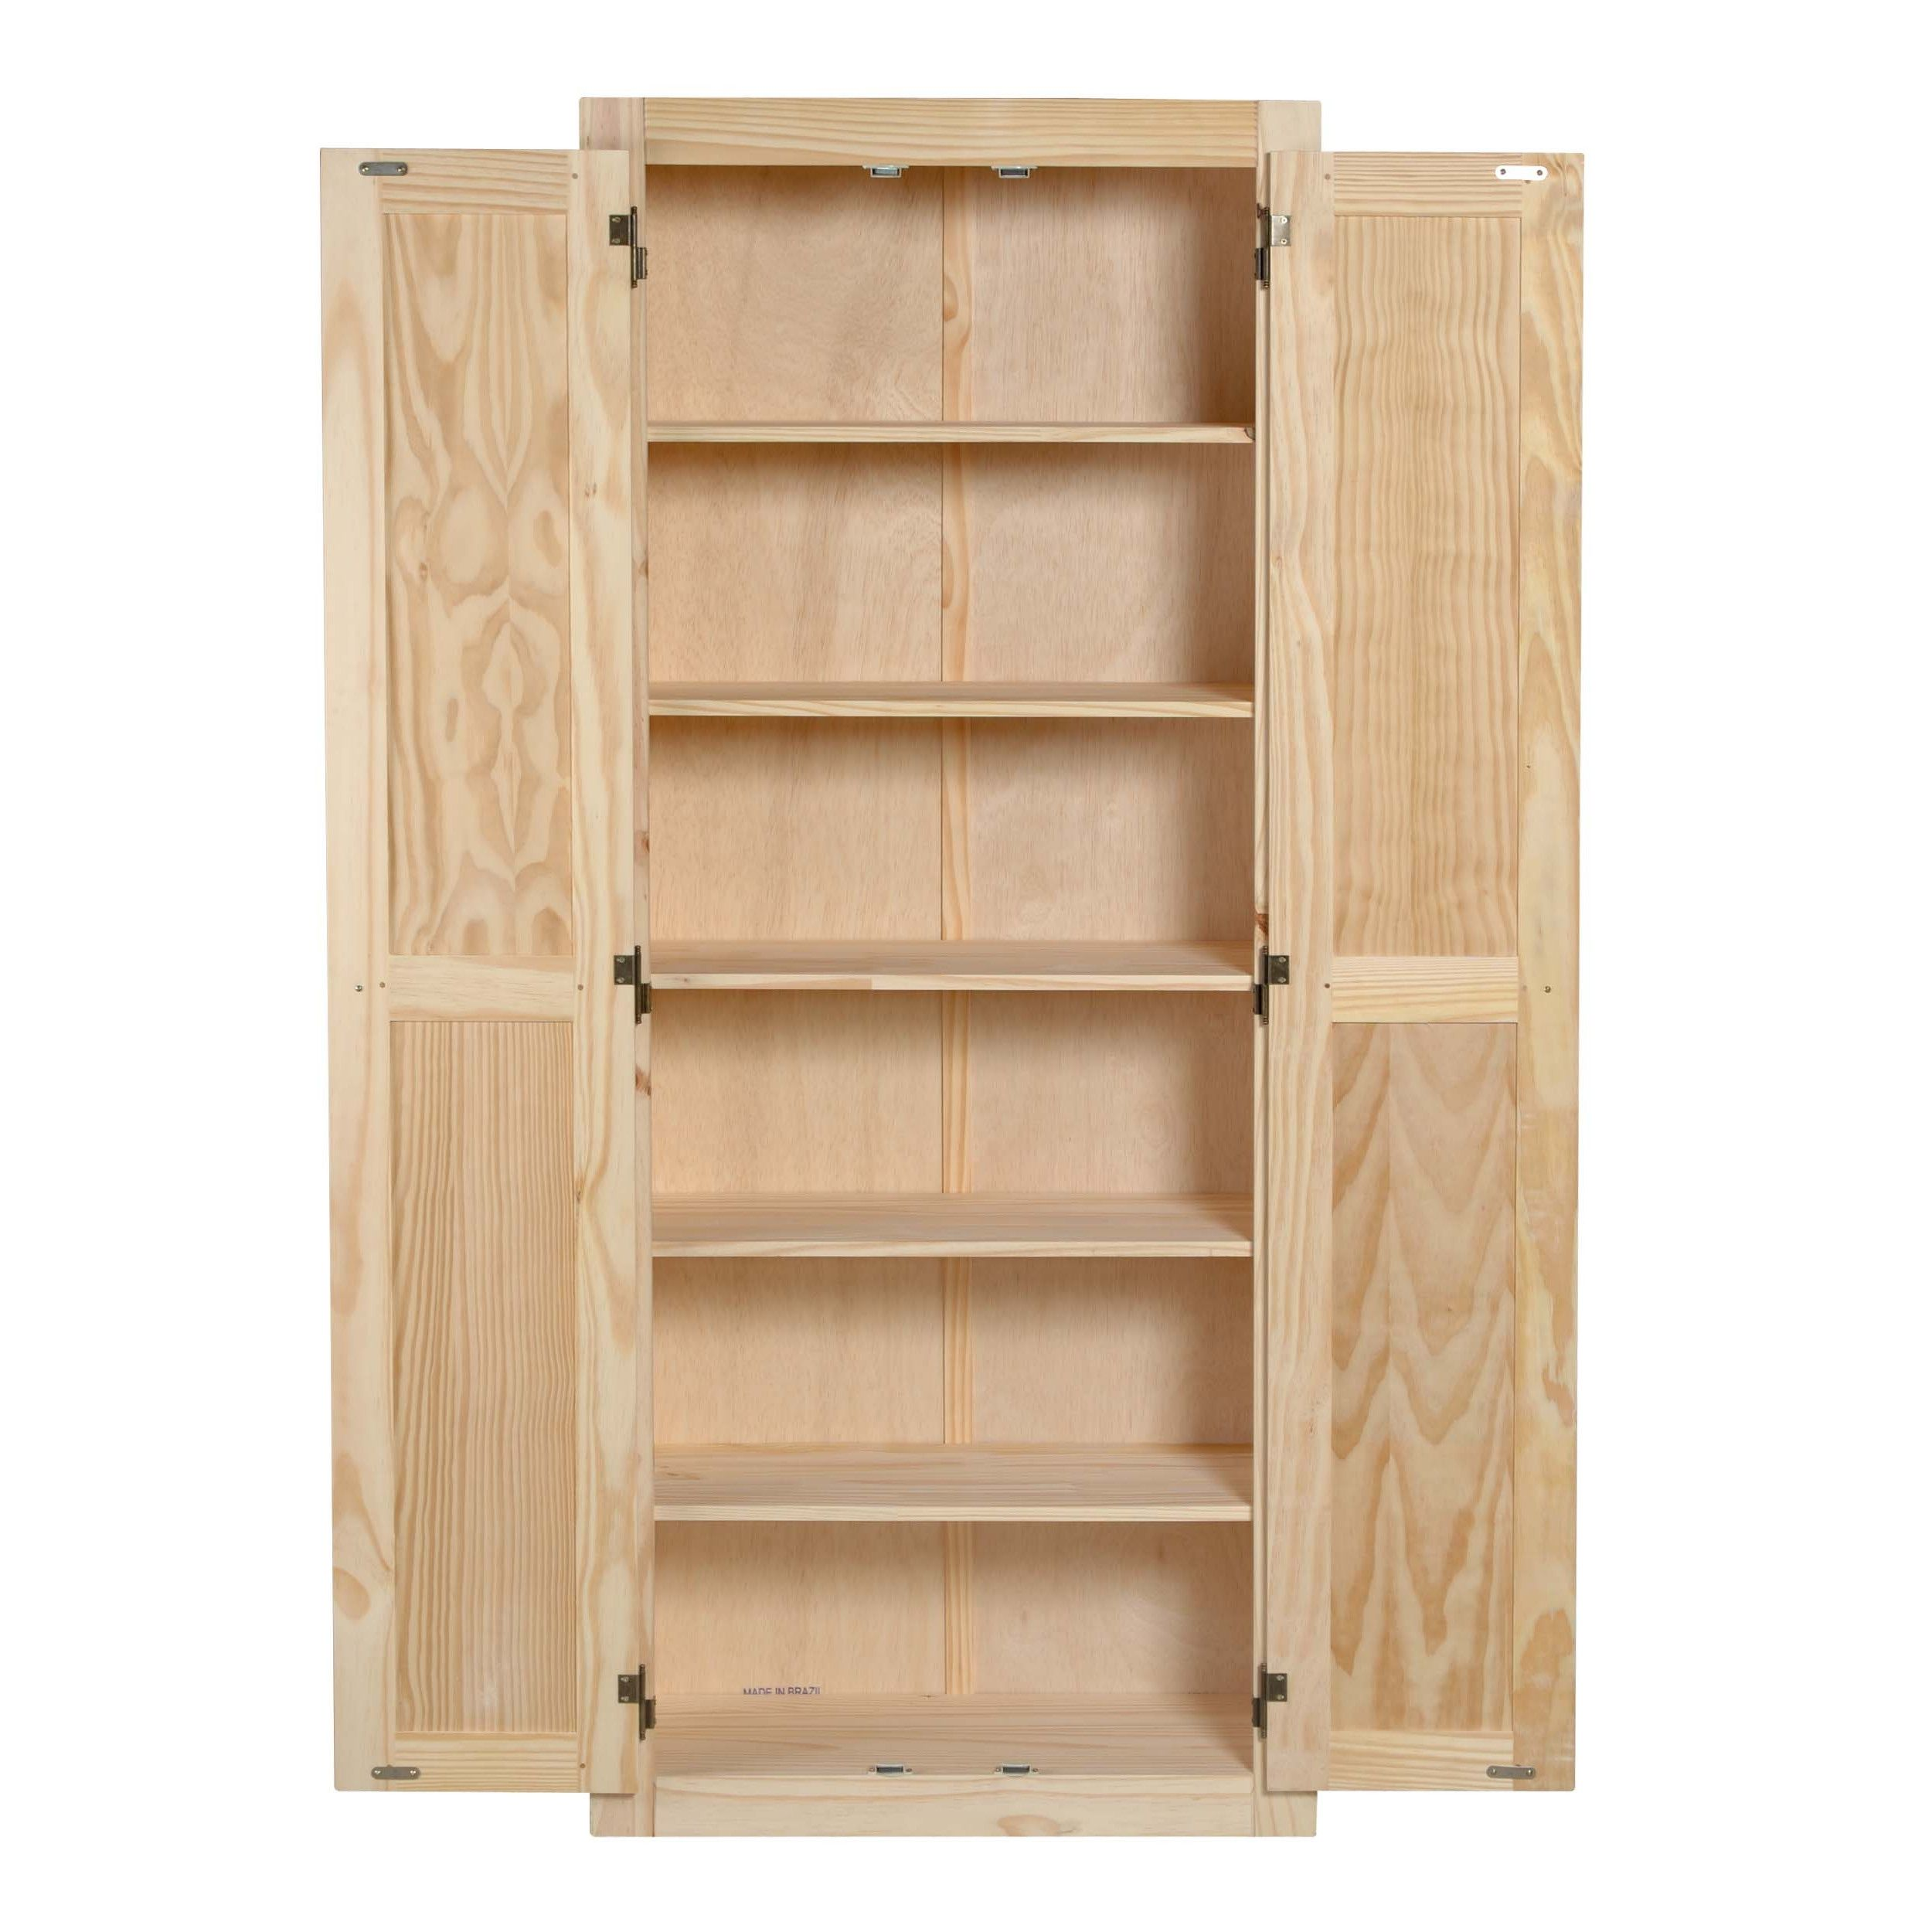 Features Unfinished. 6 Shelves (three fixed and three